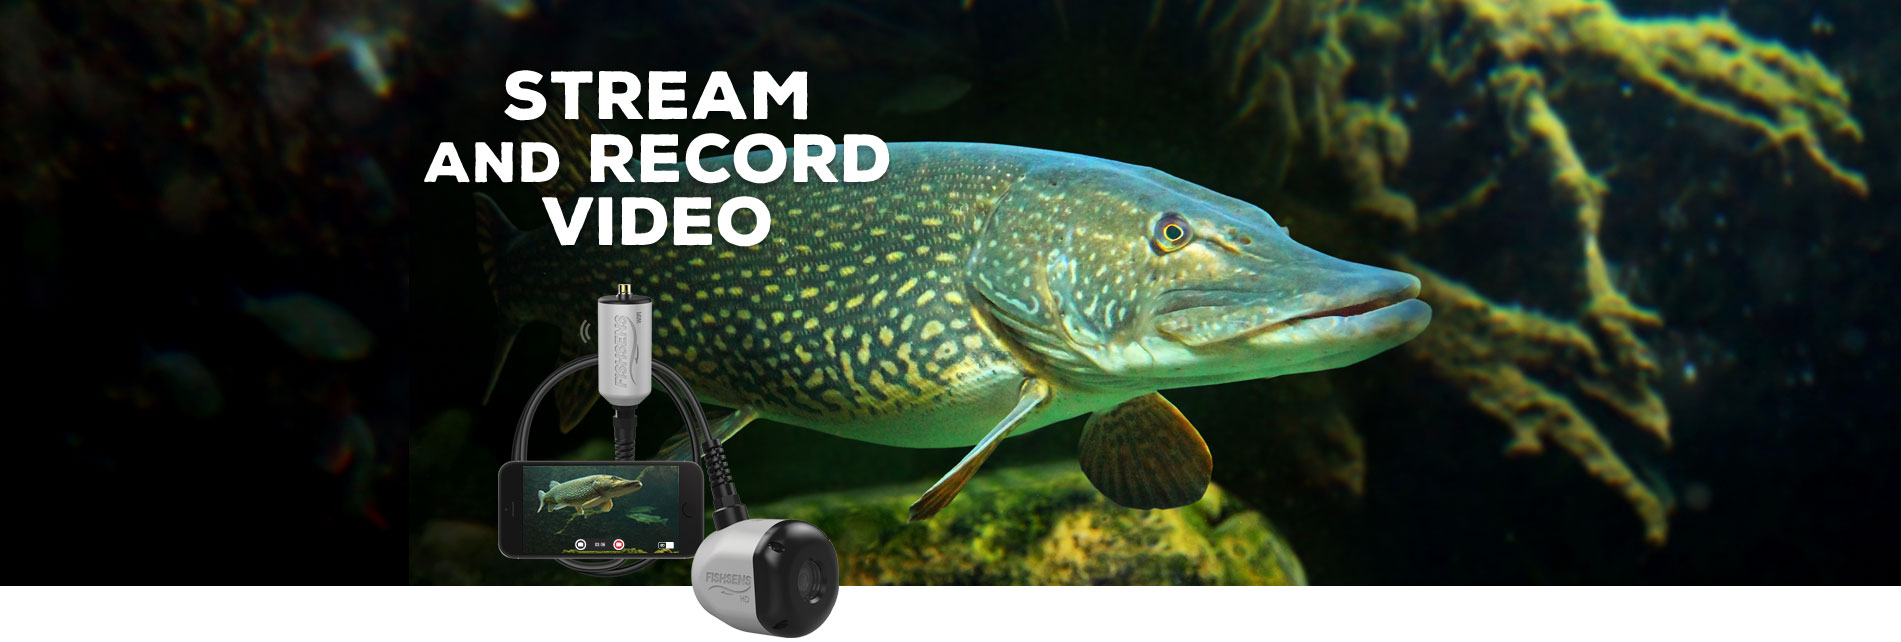 Stream and Record Video